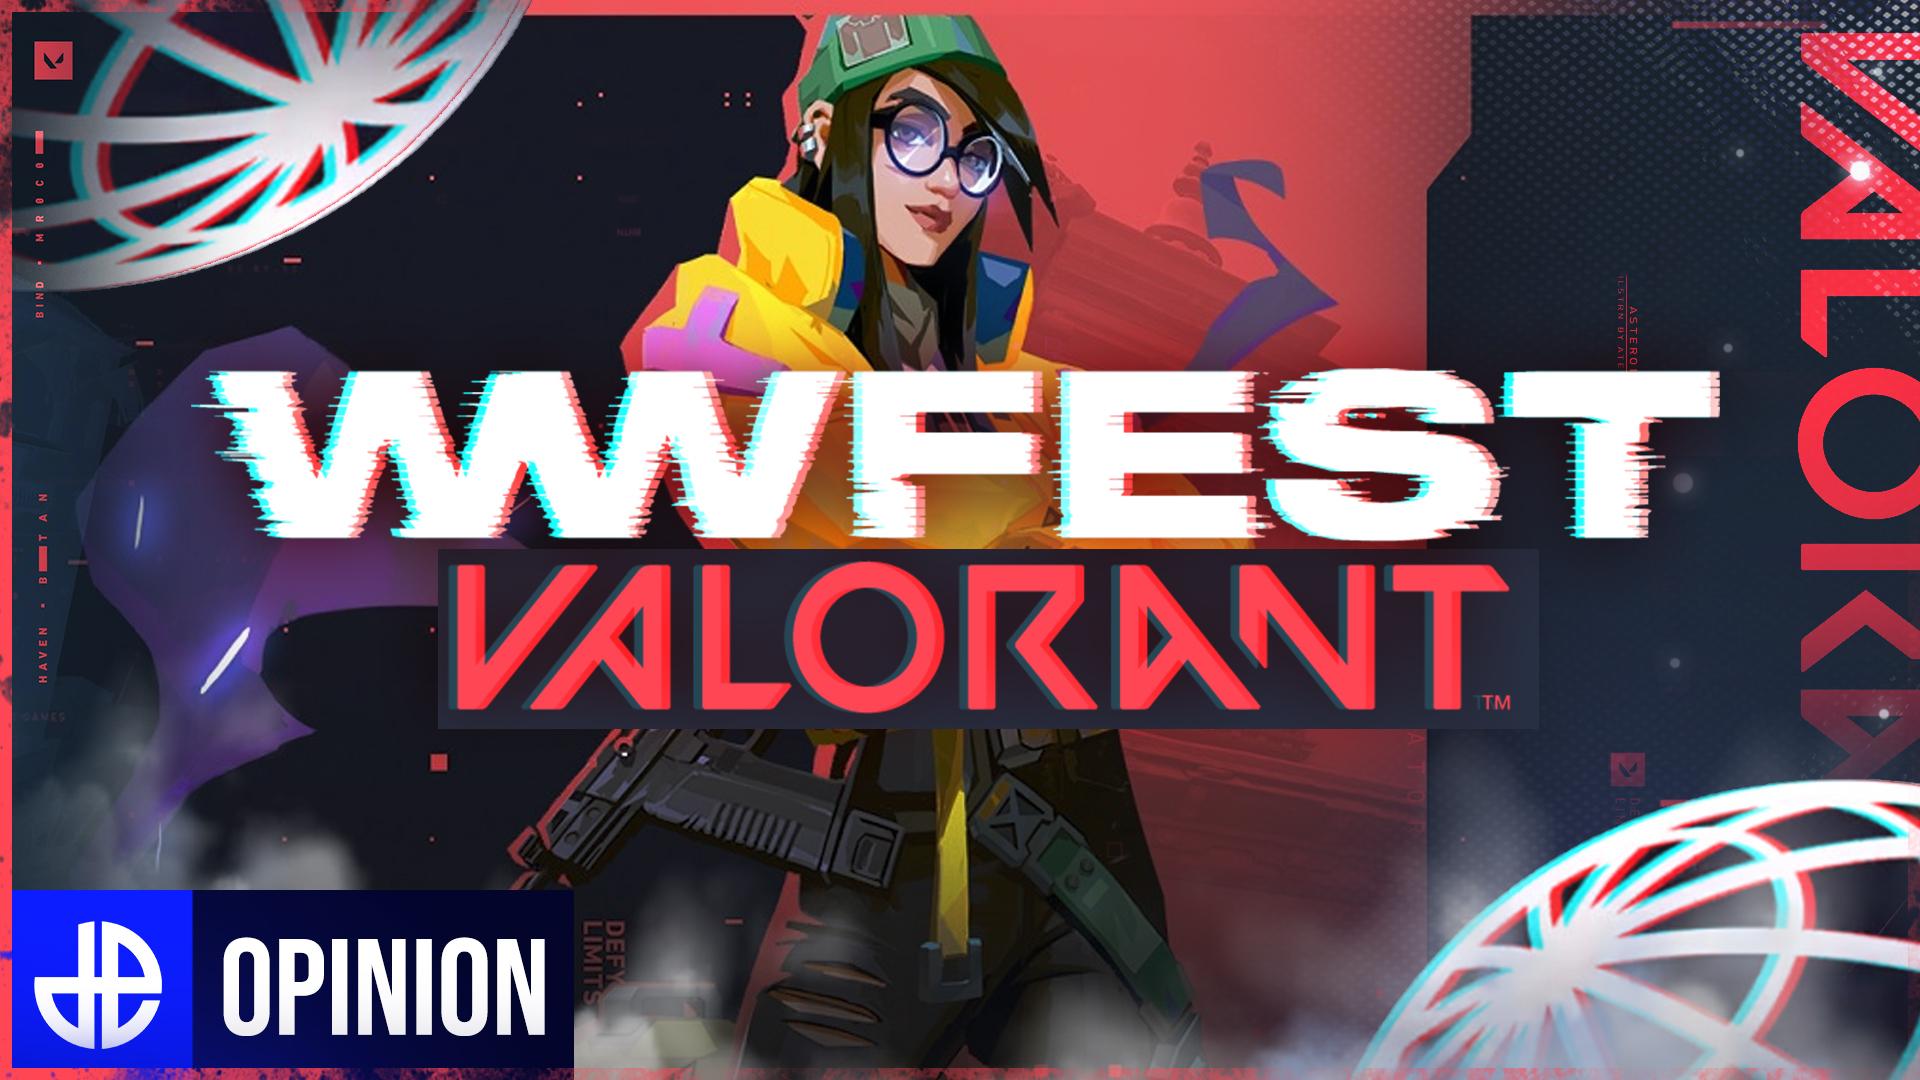 Valorant wwFest Opinion Feature